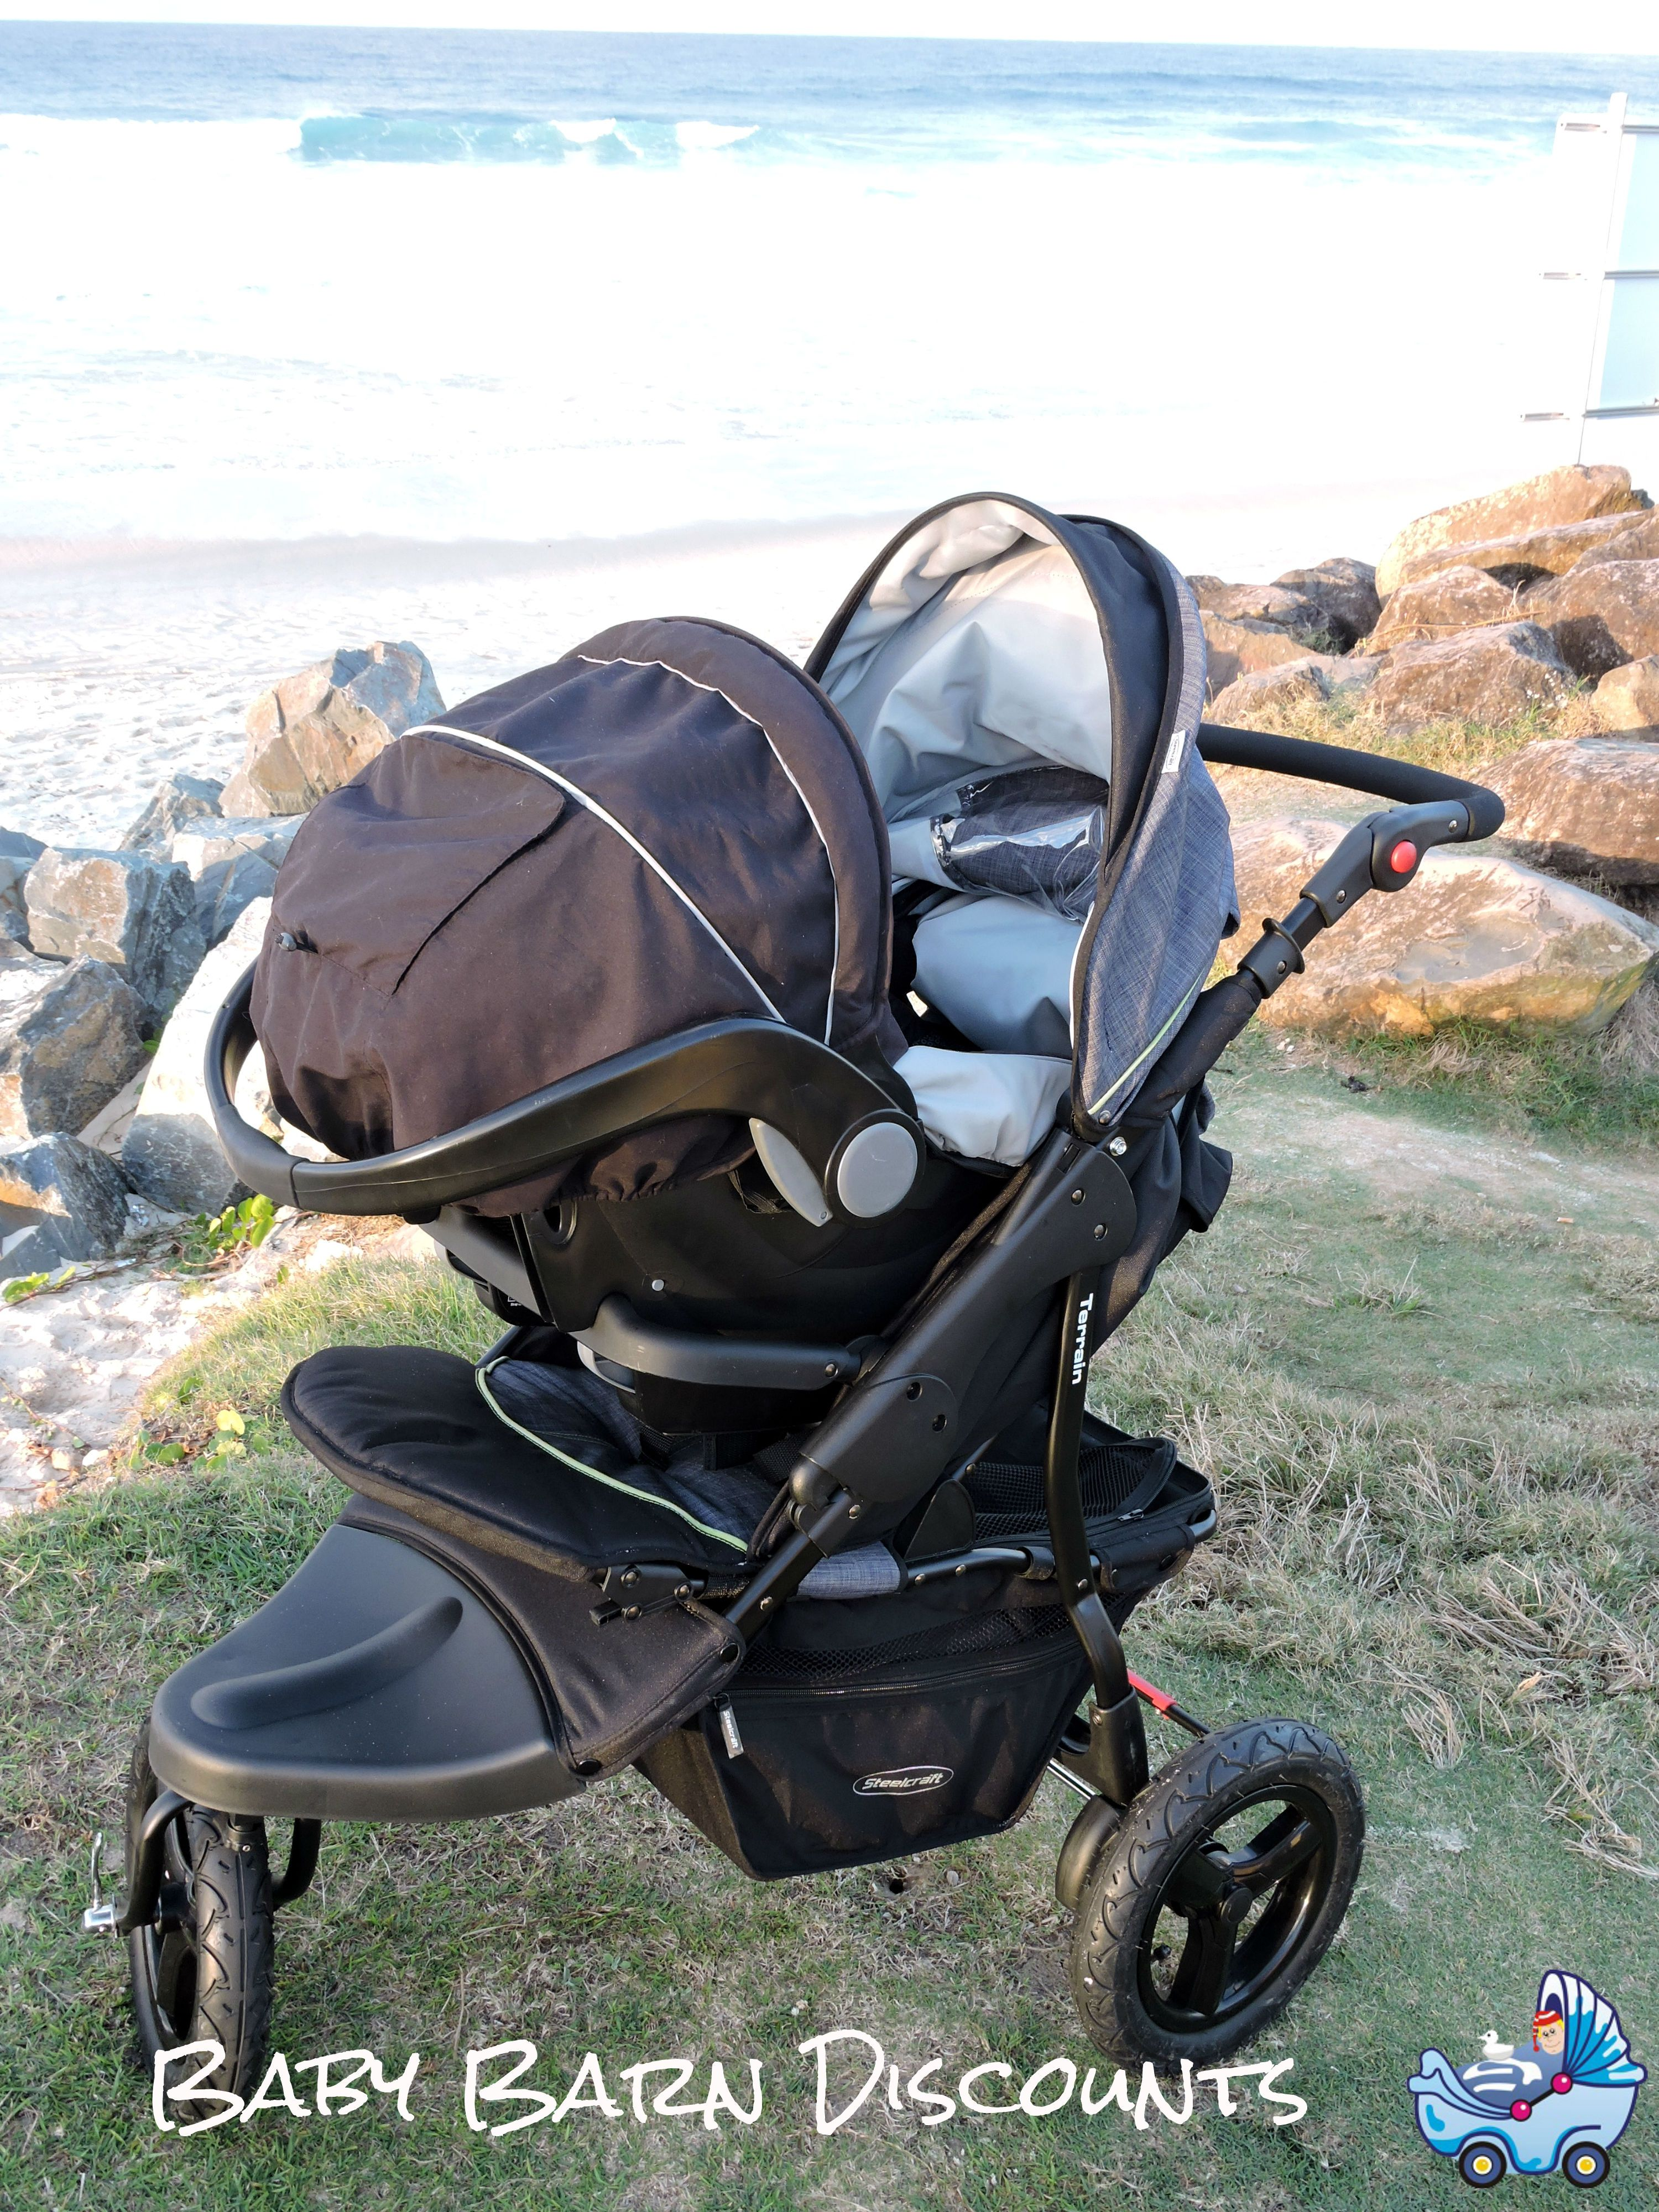 The Steelcraft Terrain stroller is also compatible with the Unity capsule infant carrier.